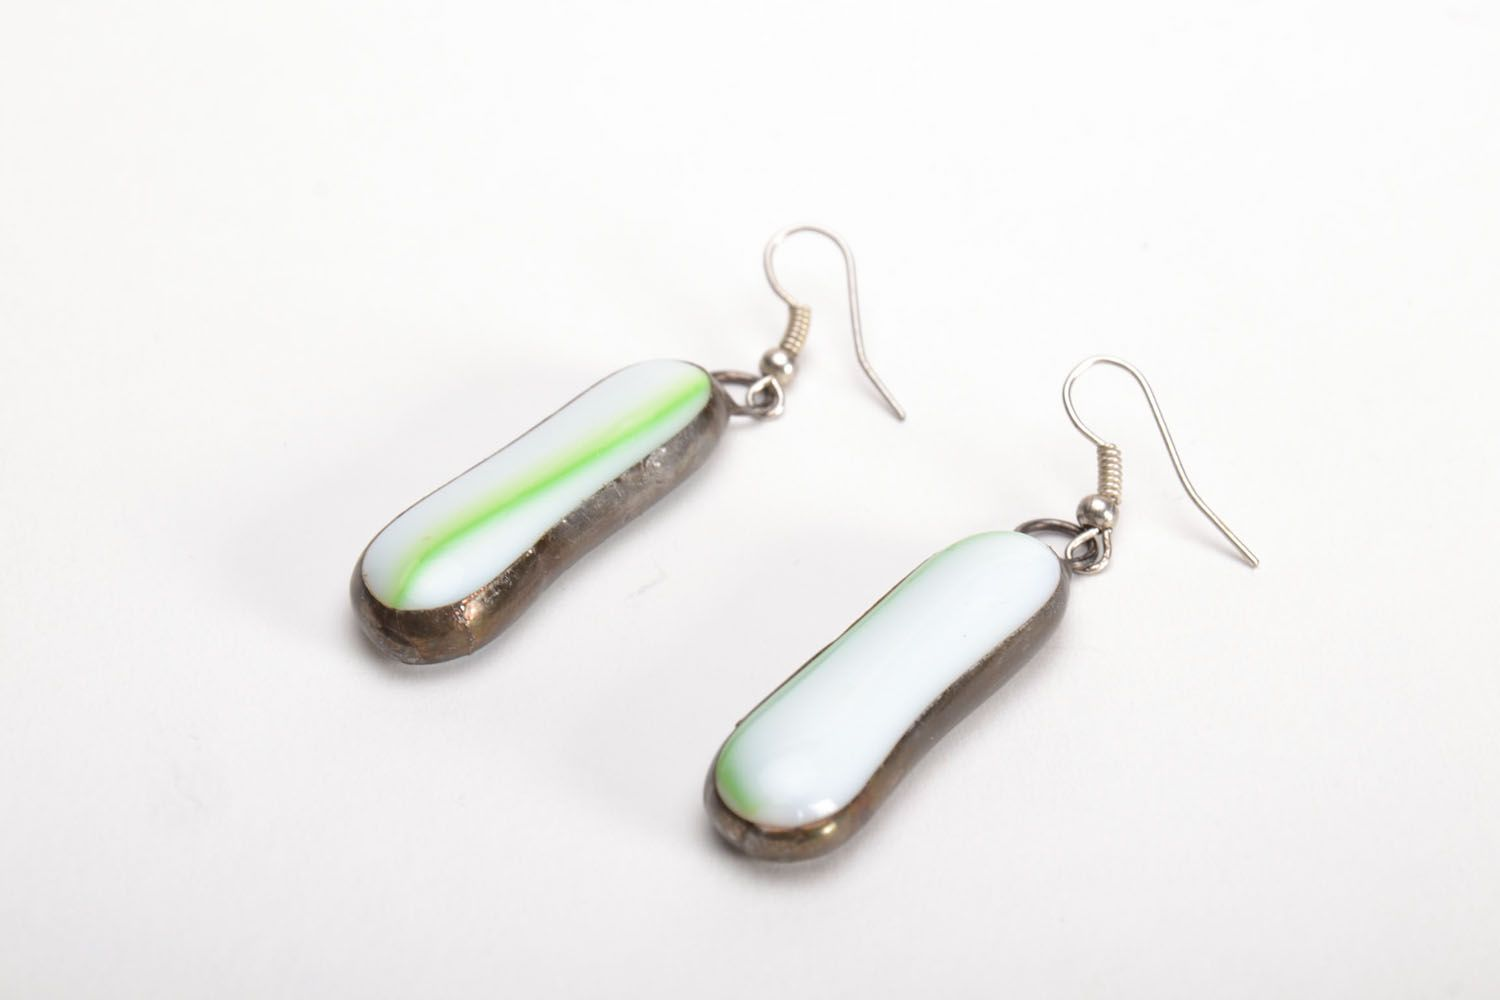 Glass earrings photo 2